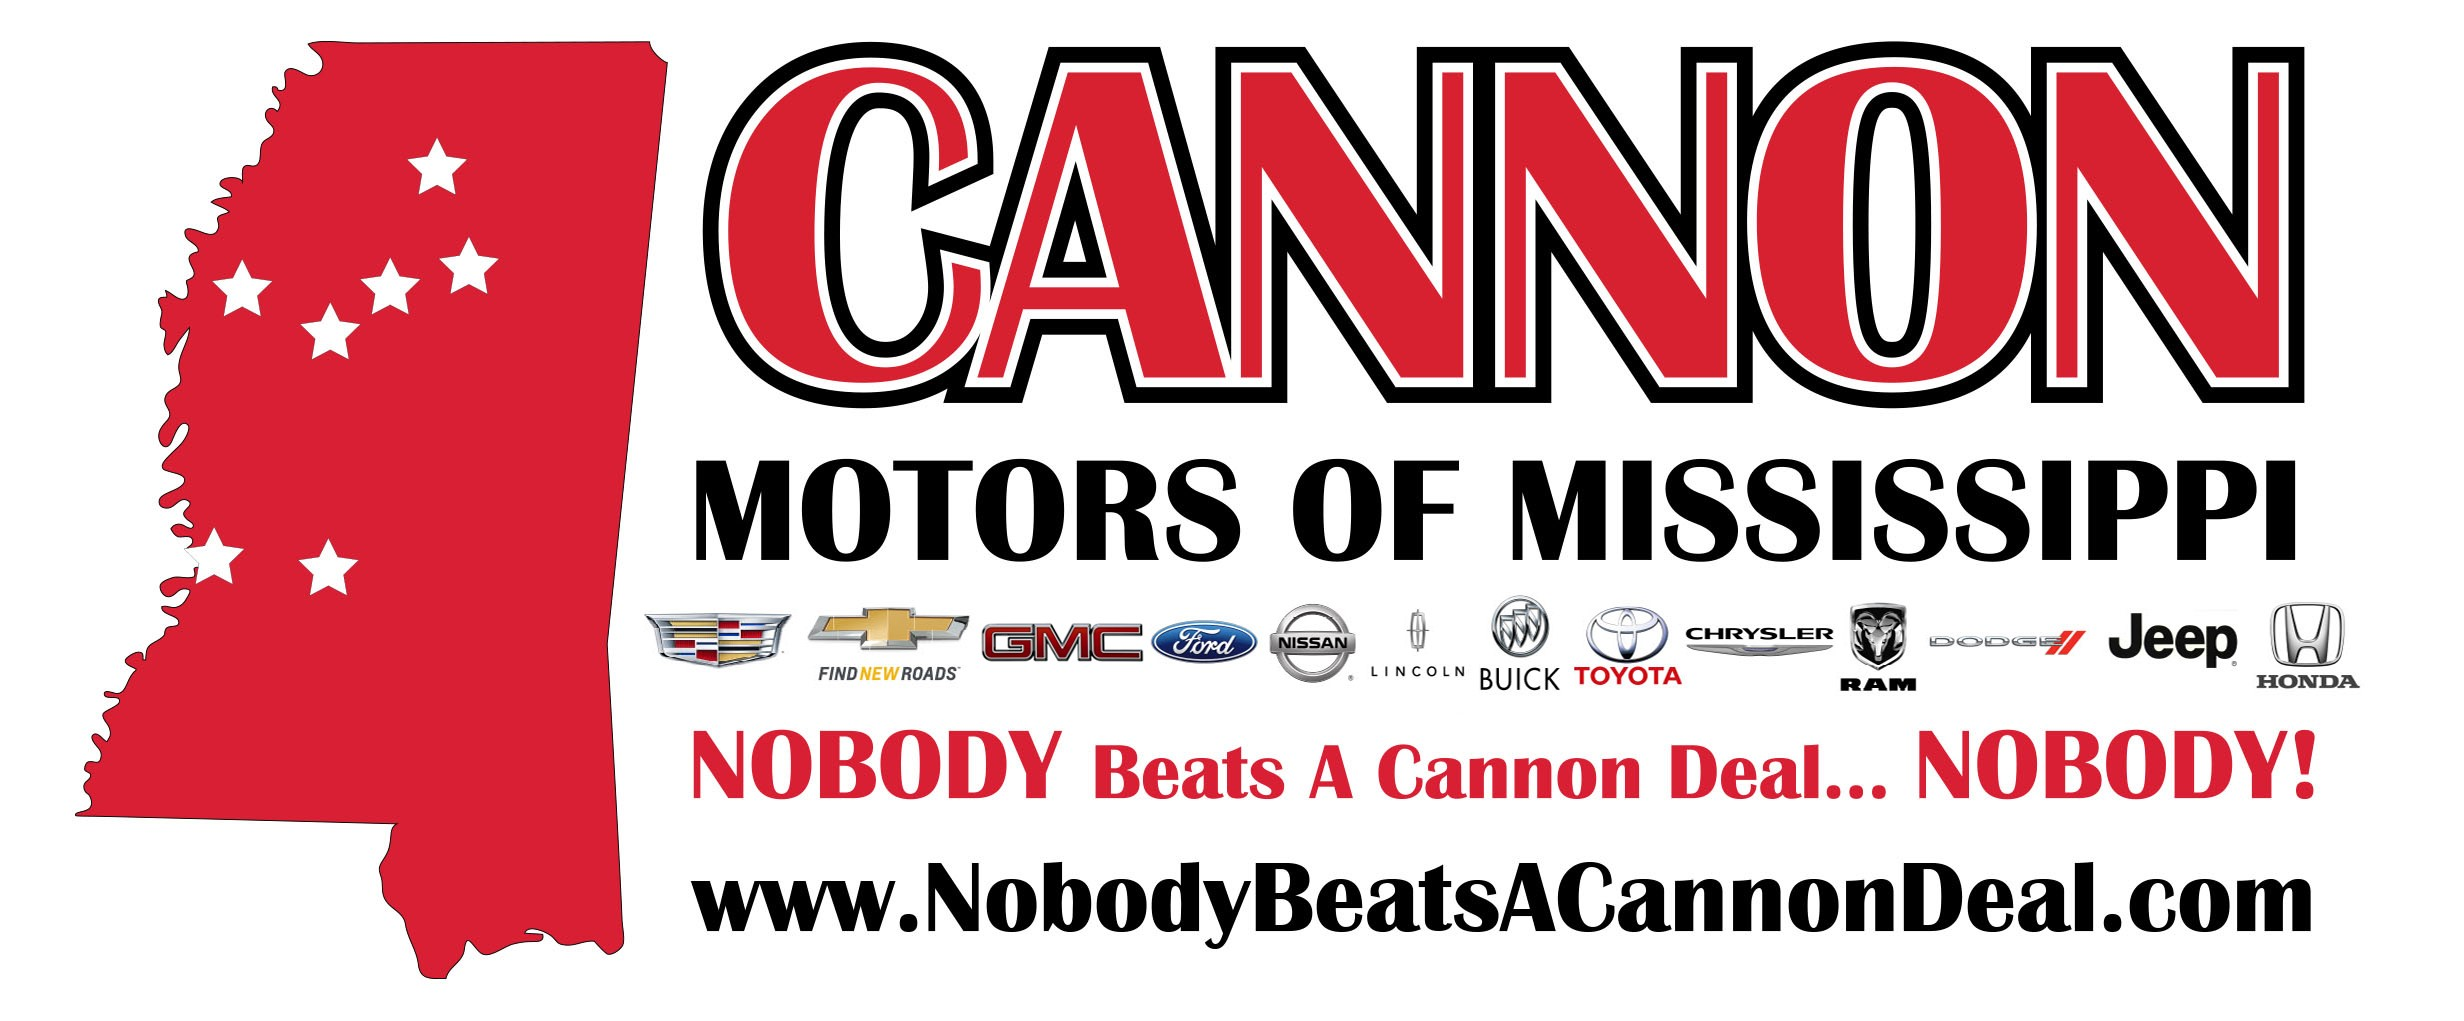 CANNON MOTORS updated Nov 2016